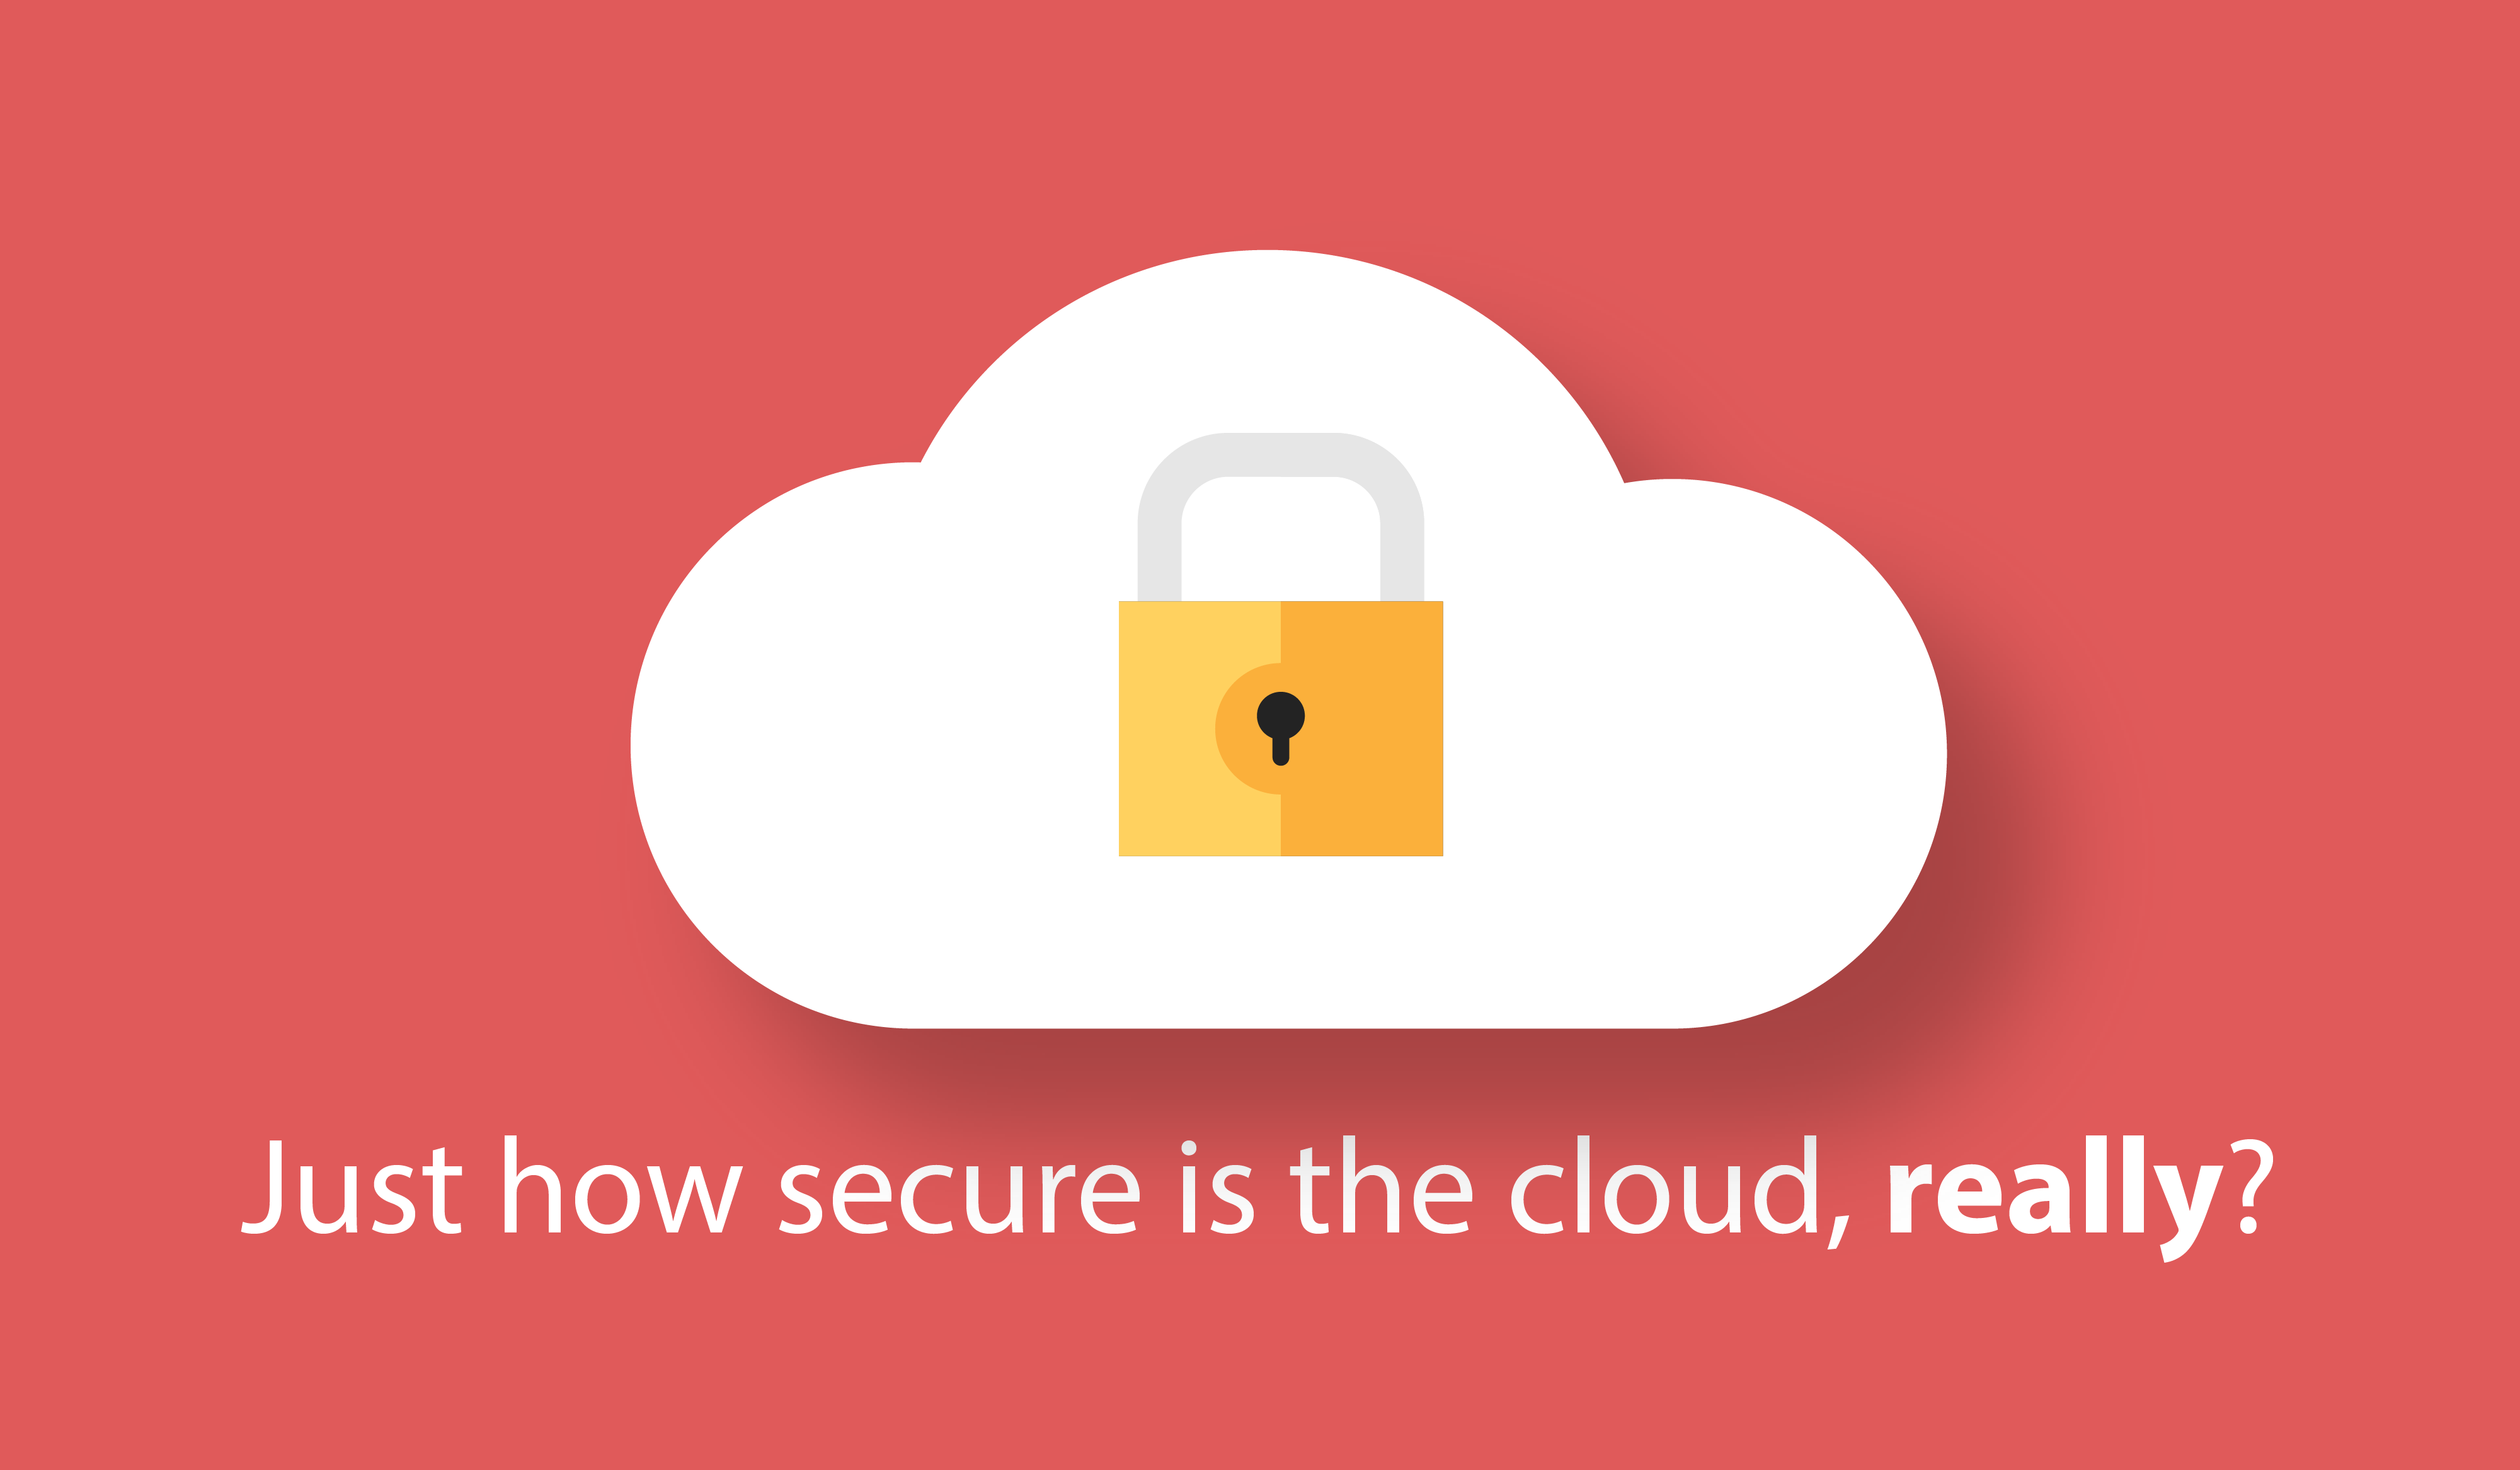 Just how secure is the cloud, really?